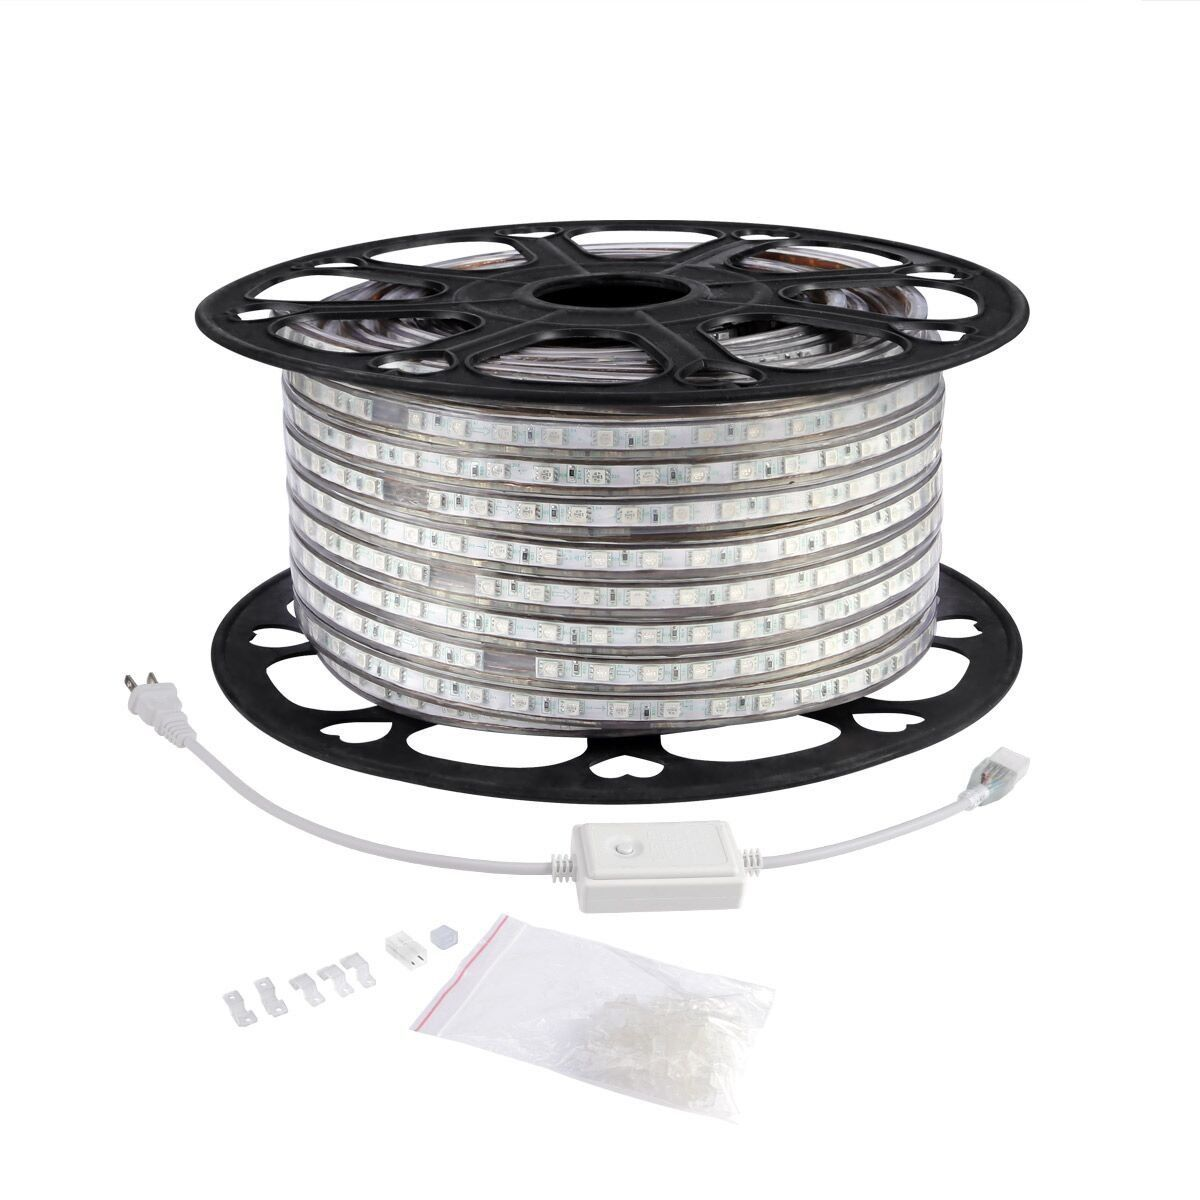 Le 164ft Flexible Led Strip Lights Blue 3000 Units Smd 5050 Leds 720lm M 110 120 V Ac Waterproof Led Rope Lights Flexible Led Strip Lights Strip Lighting